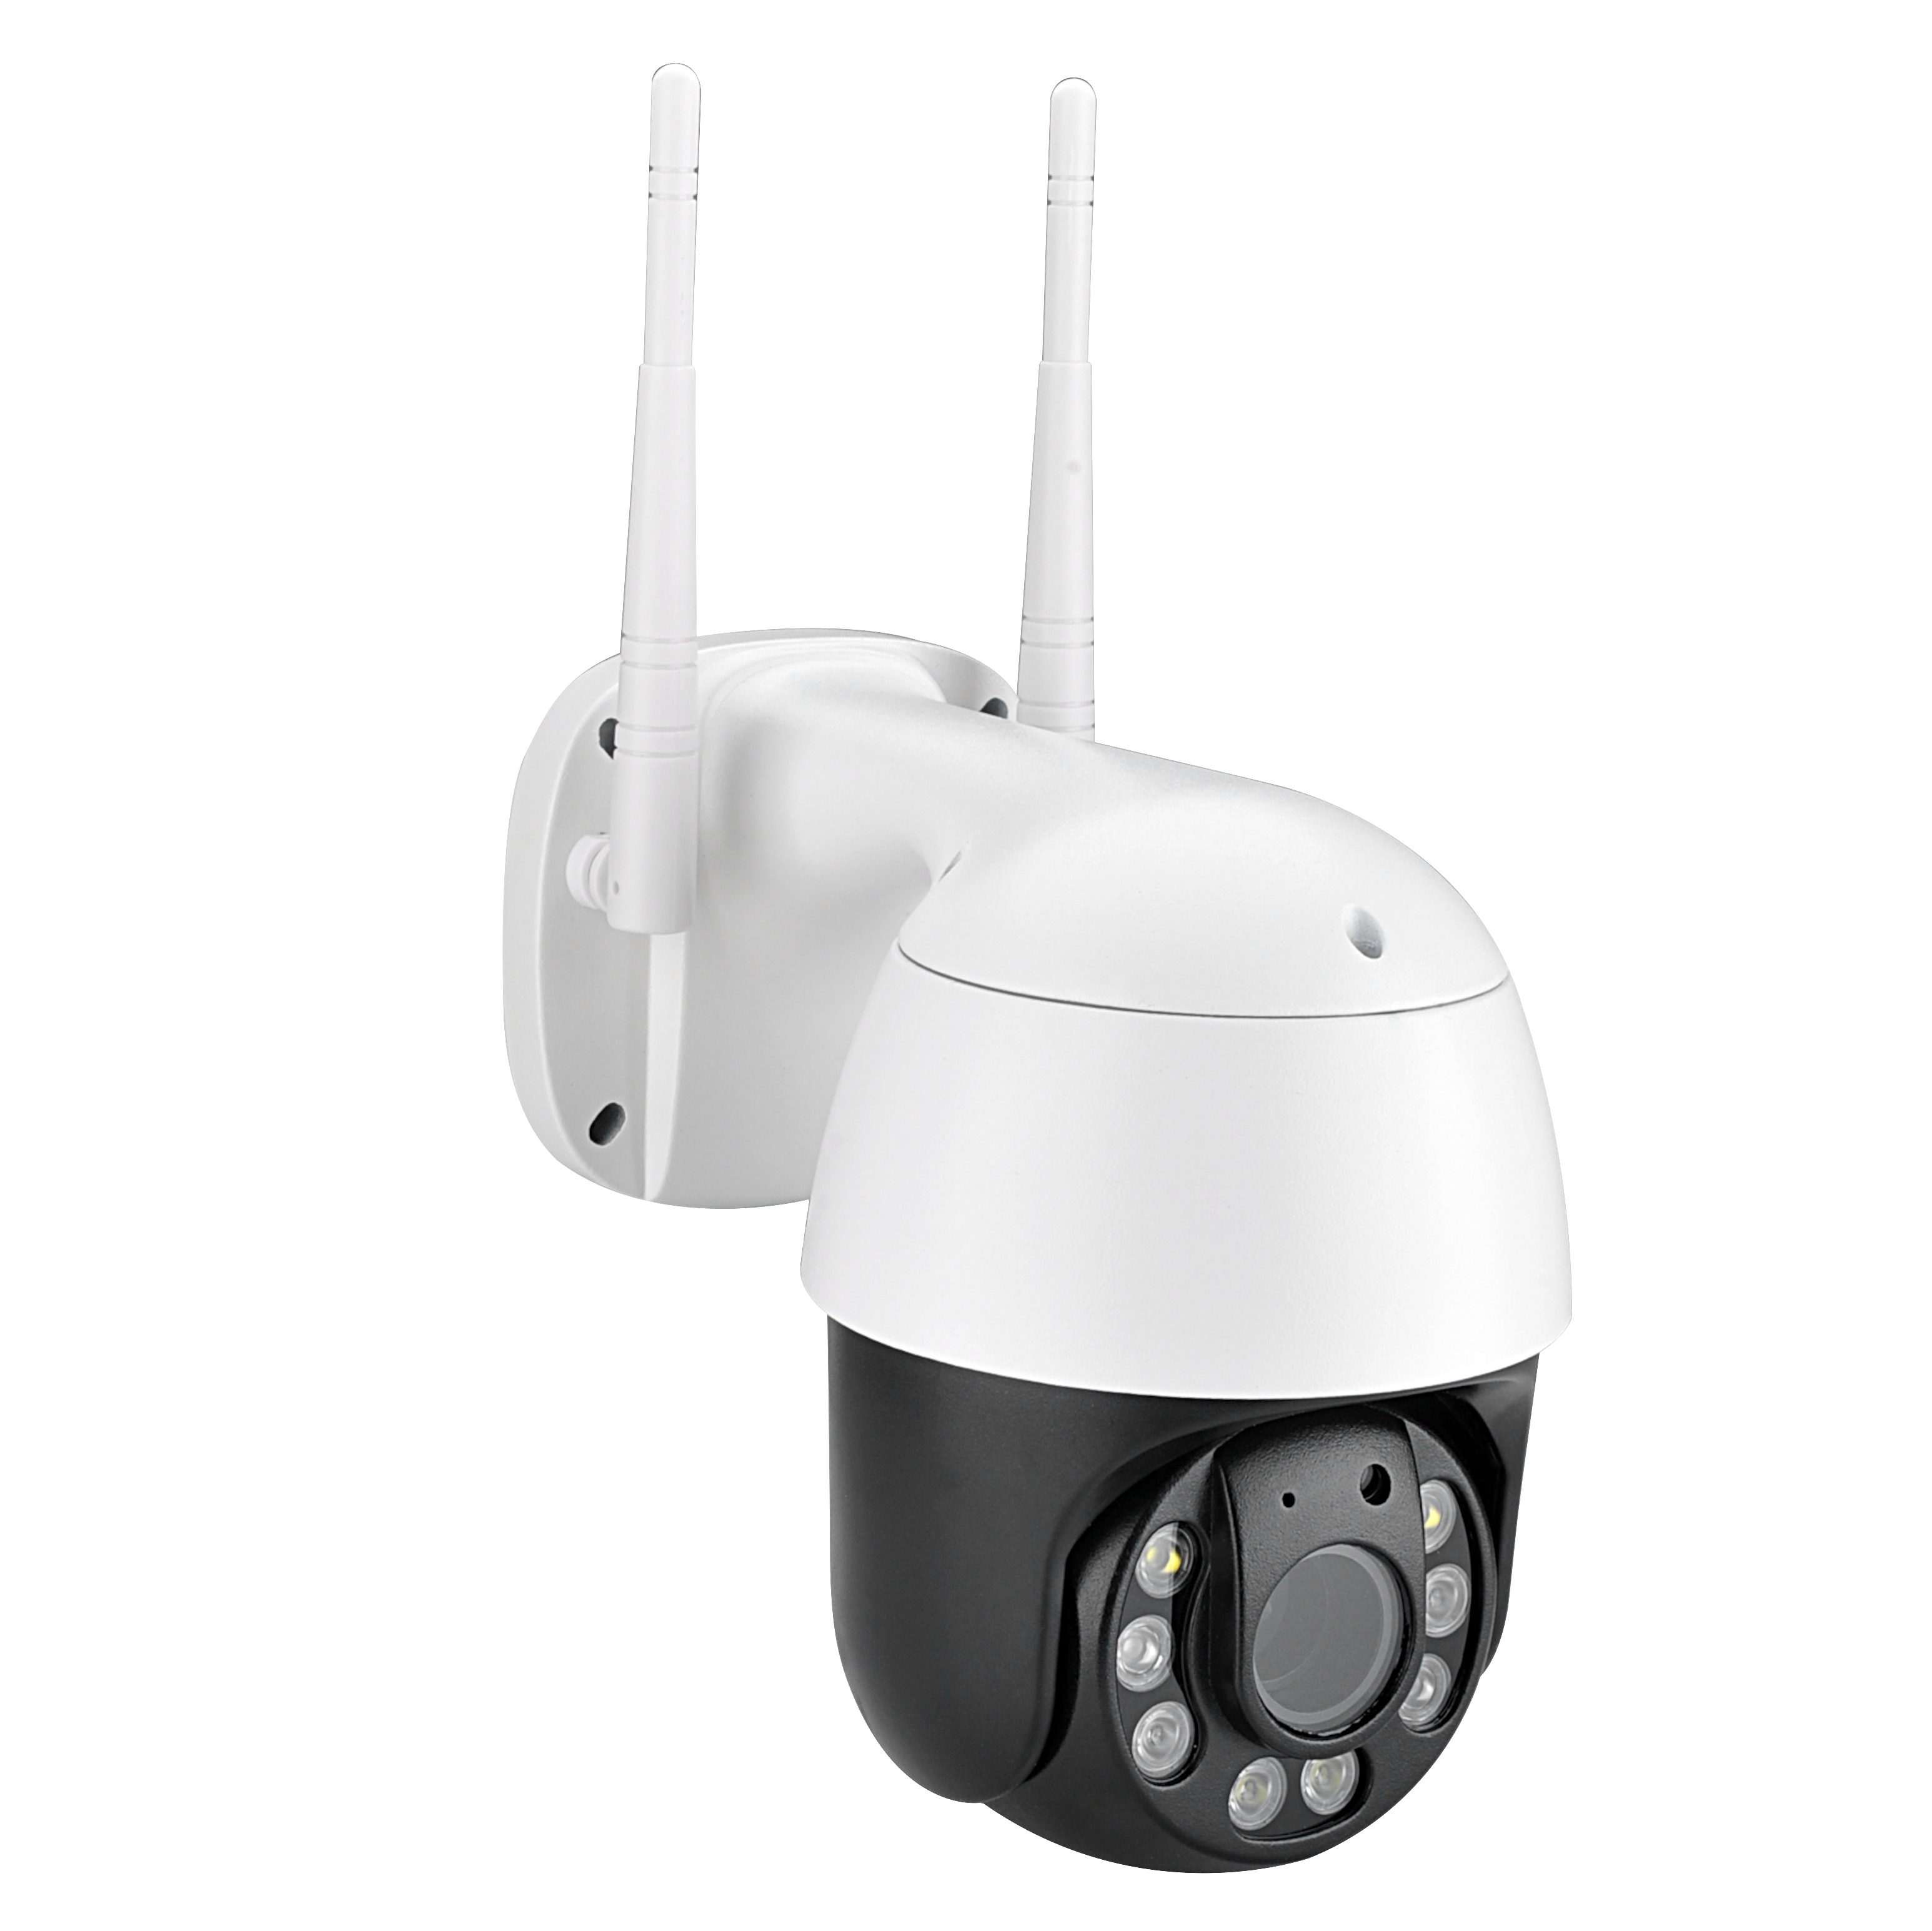 Outdoor 2.5inch PTZ 2.4G WiFi Security Camera Wireless Surveillance HD 1080P Pan/Tilt 5X Optical Zoom 150ft Night Vision Two-Way Audio IP66 Weatherproof Motion Detection E-Mail/Push Alerts AT-200TW